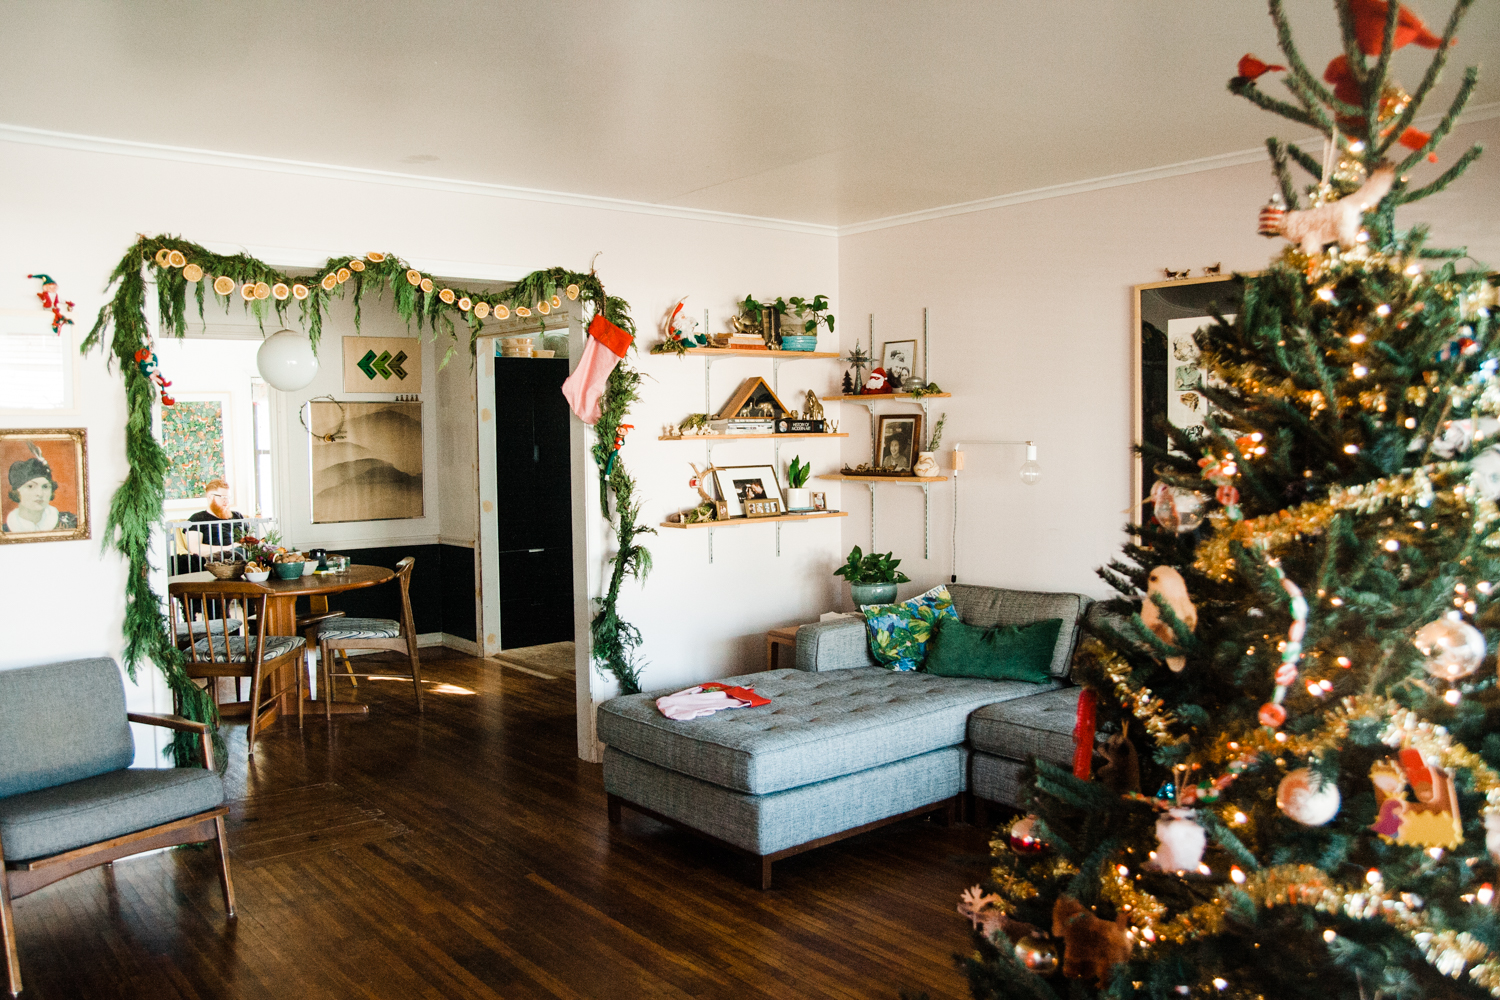 daly holiday home tour-54.jpg